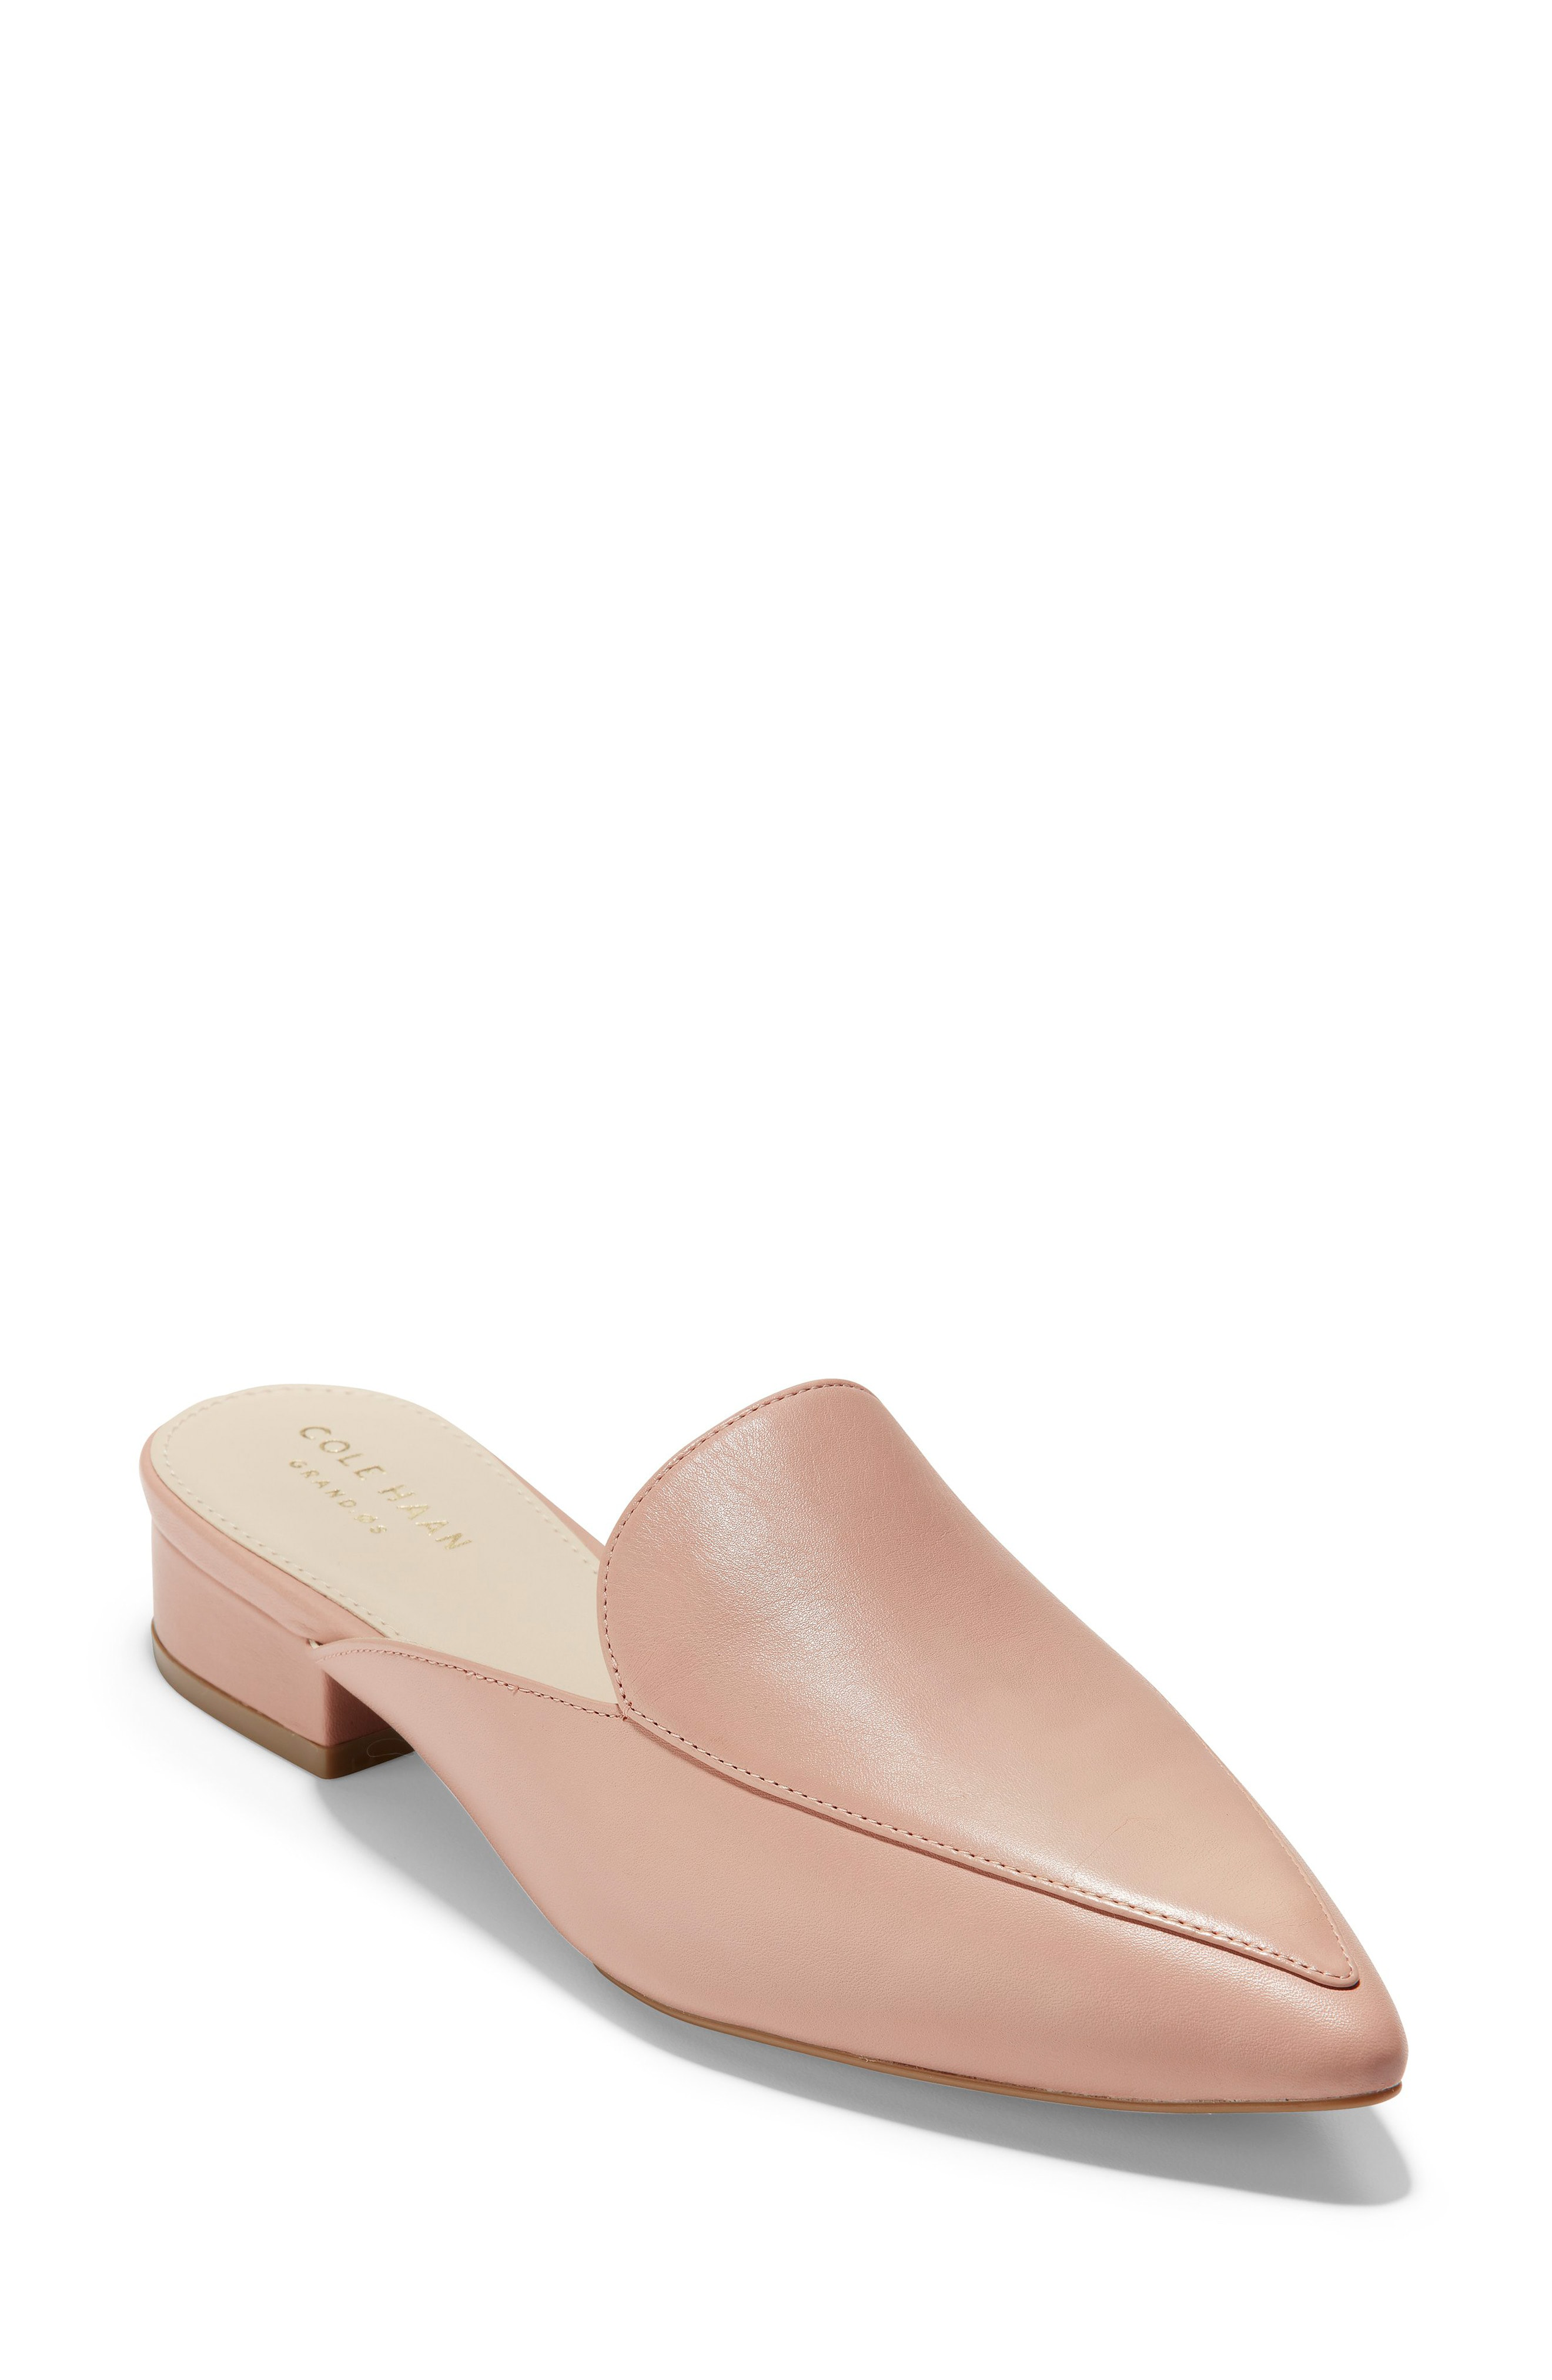 bd8e92f6bfa Cole Haan Piper Loafer Mule In Misty Rose Leather